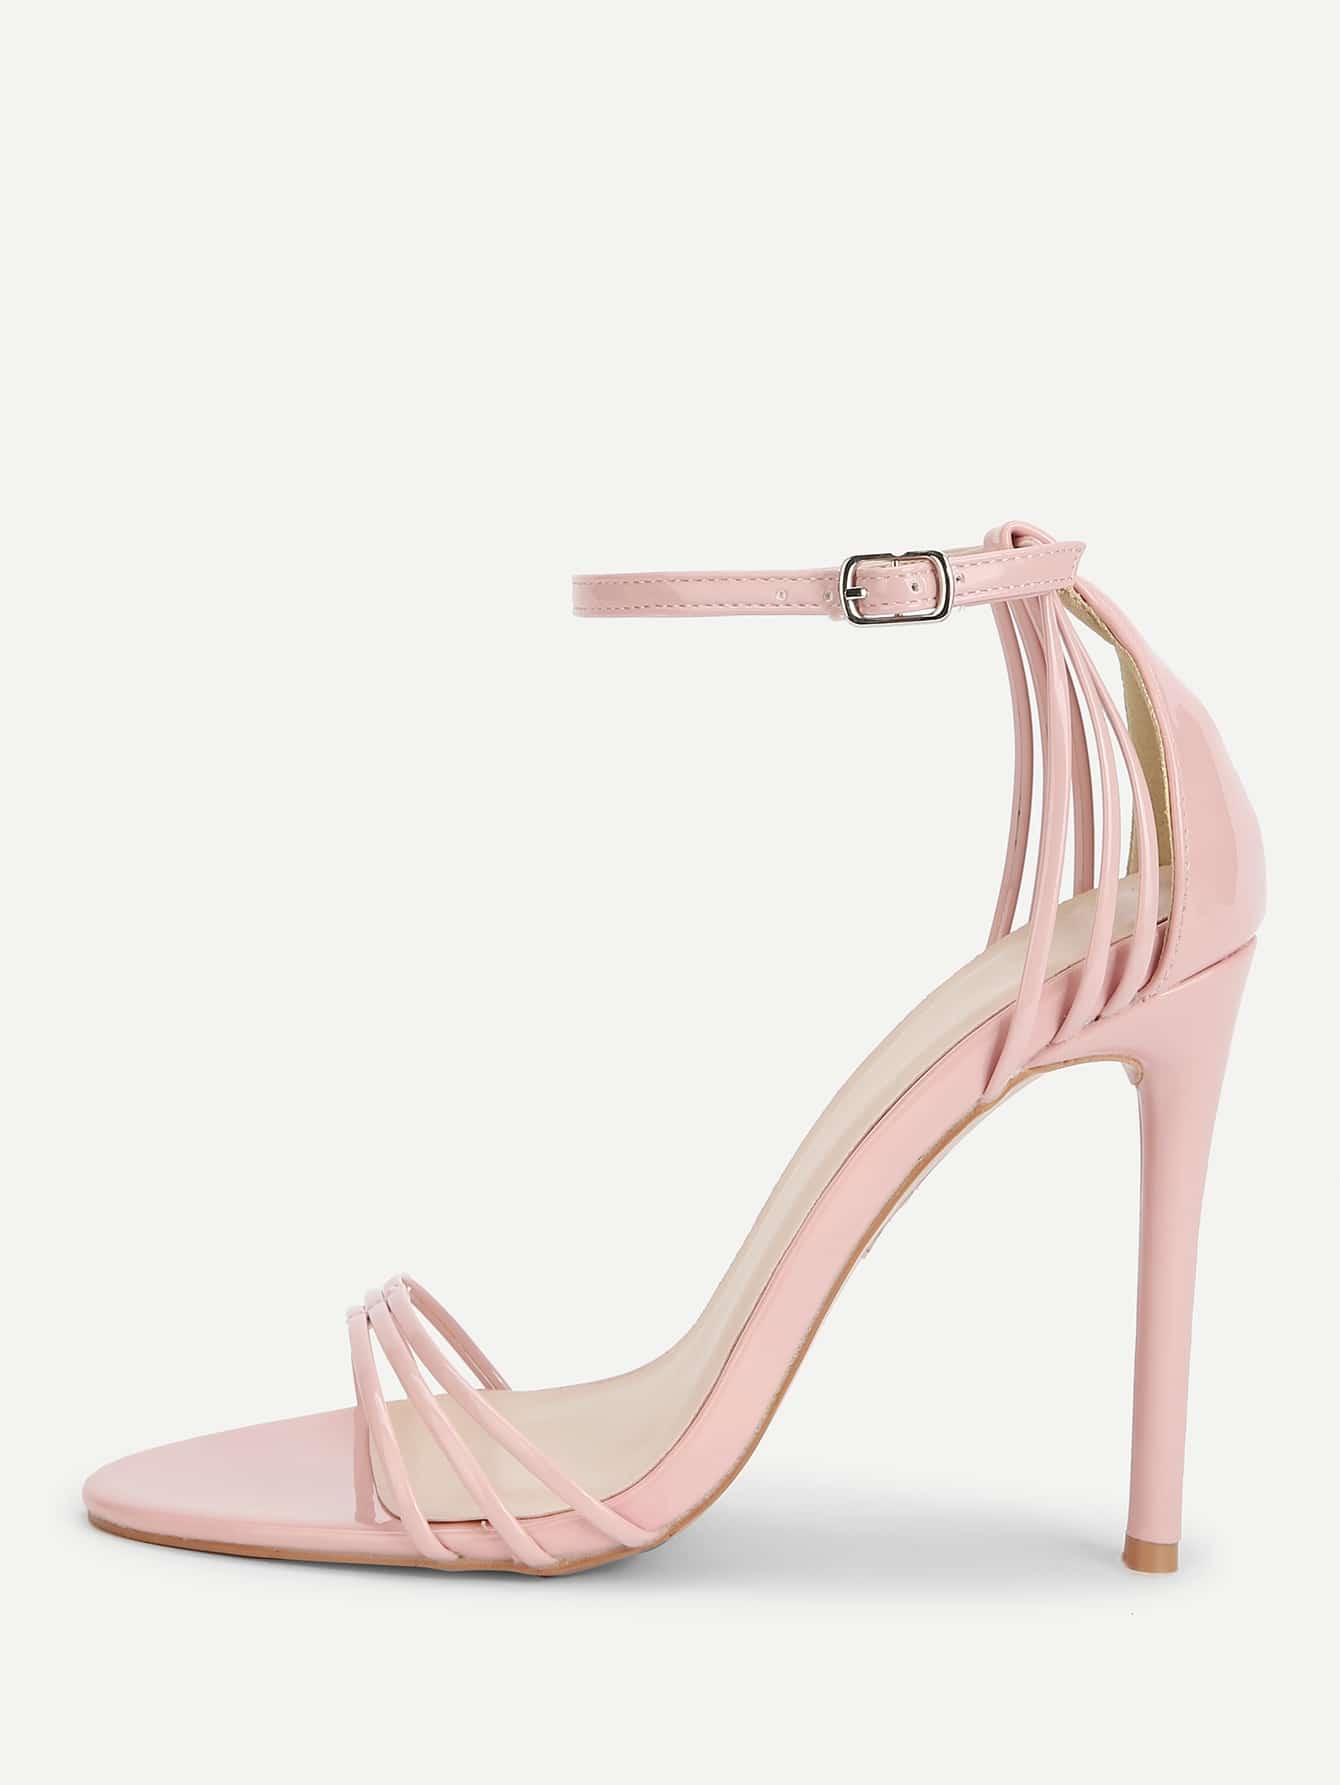 Ankle Strap Open Toe Heeled Sandals woman high heels sandals gold chains sandals lady high heels sandals sexy open toe pumps cut outs dress nightclub shoes b160